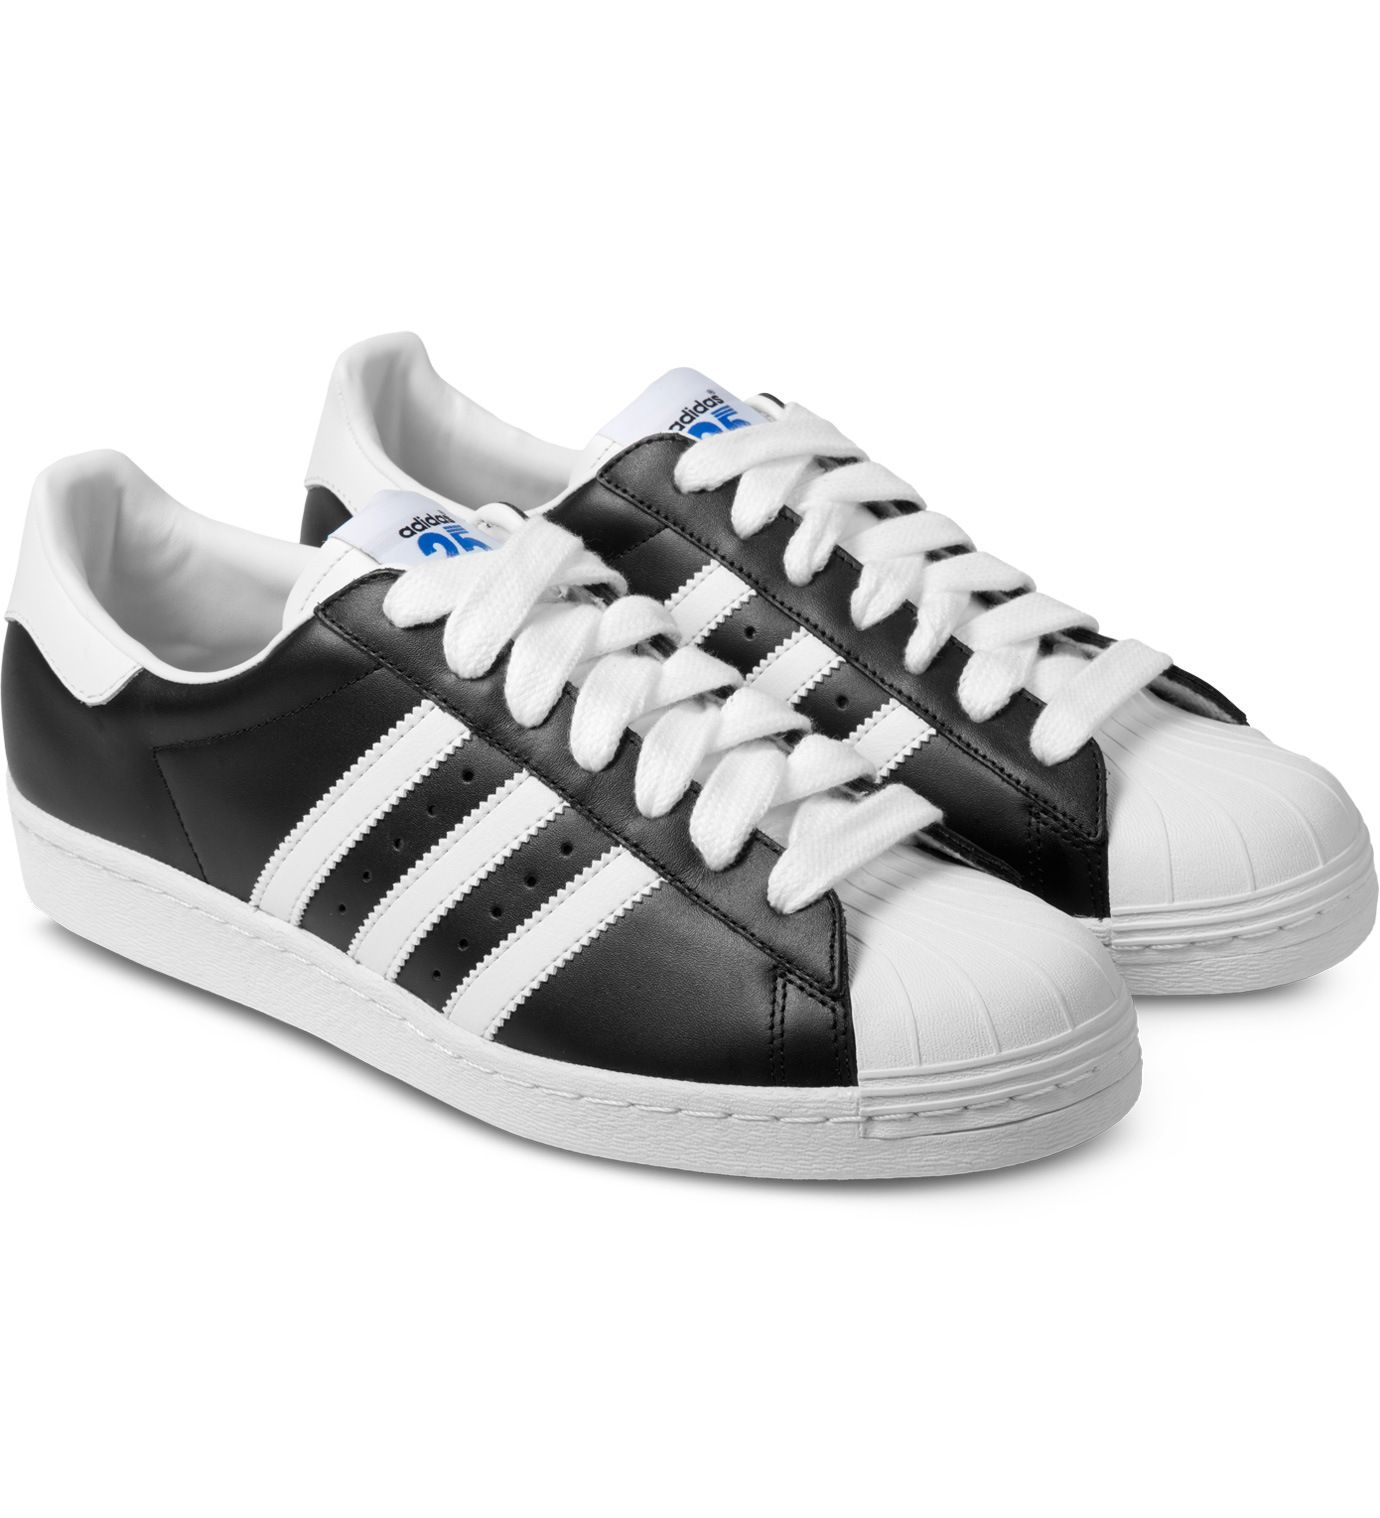 adidas originals superstar 80s nigo,sneakers adidas